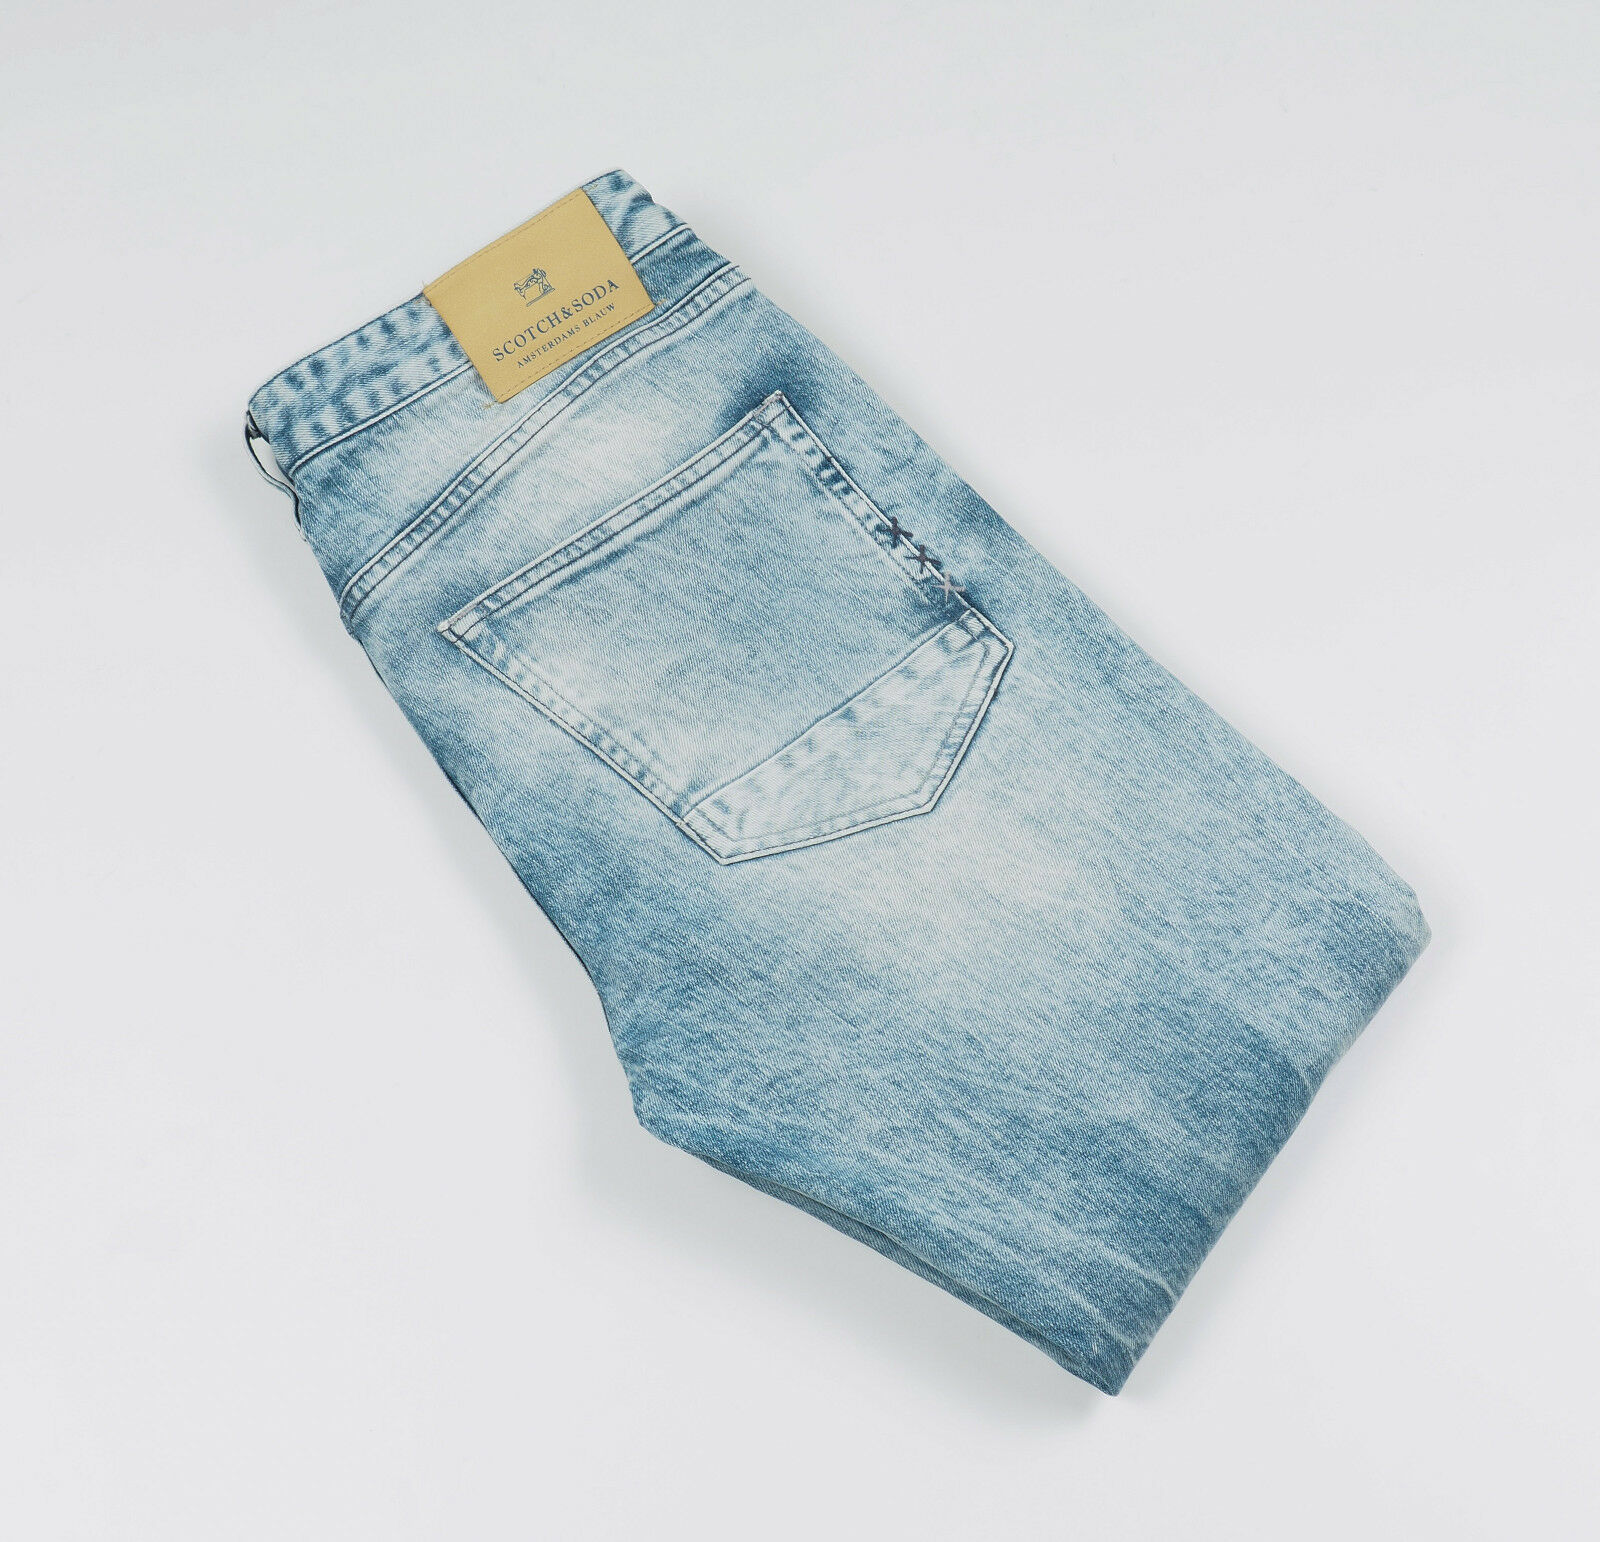 Scotch & Soda Men's bluee Jeans Size 32x32